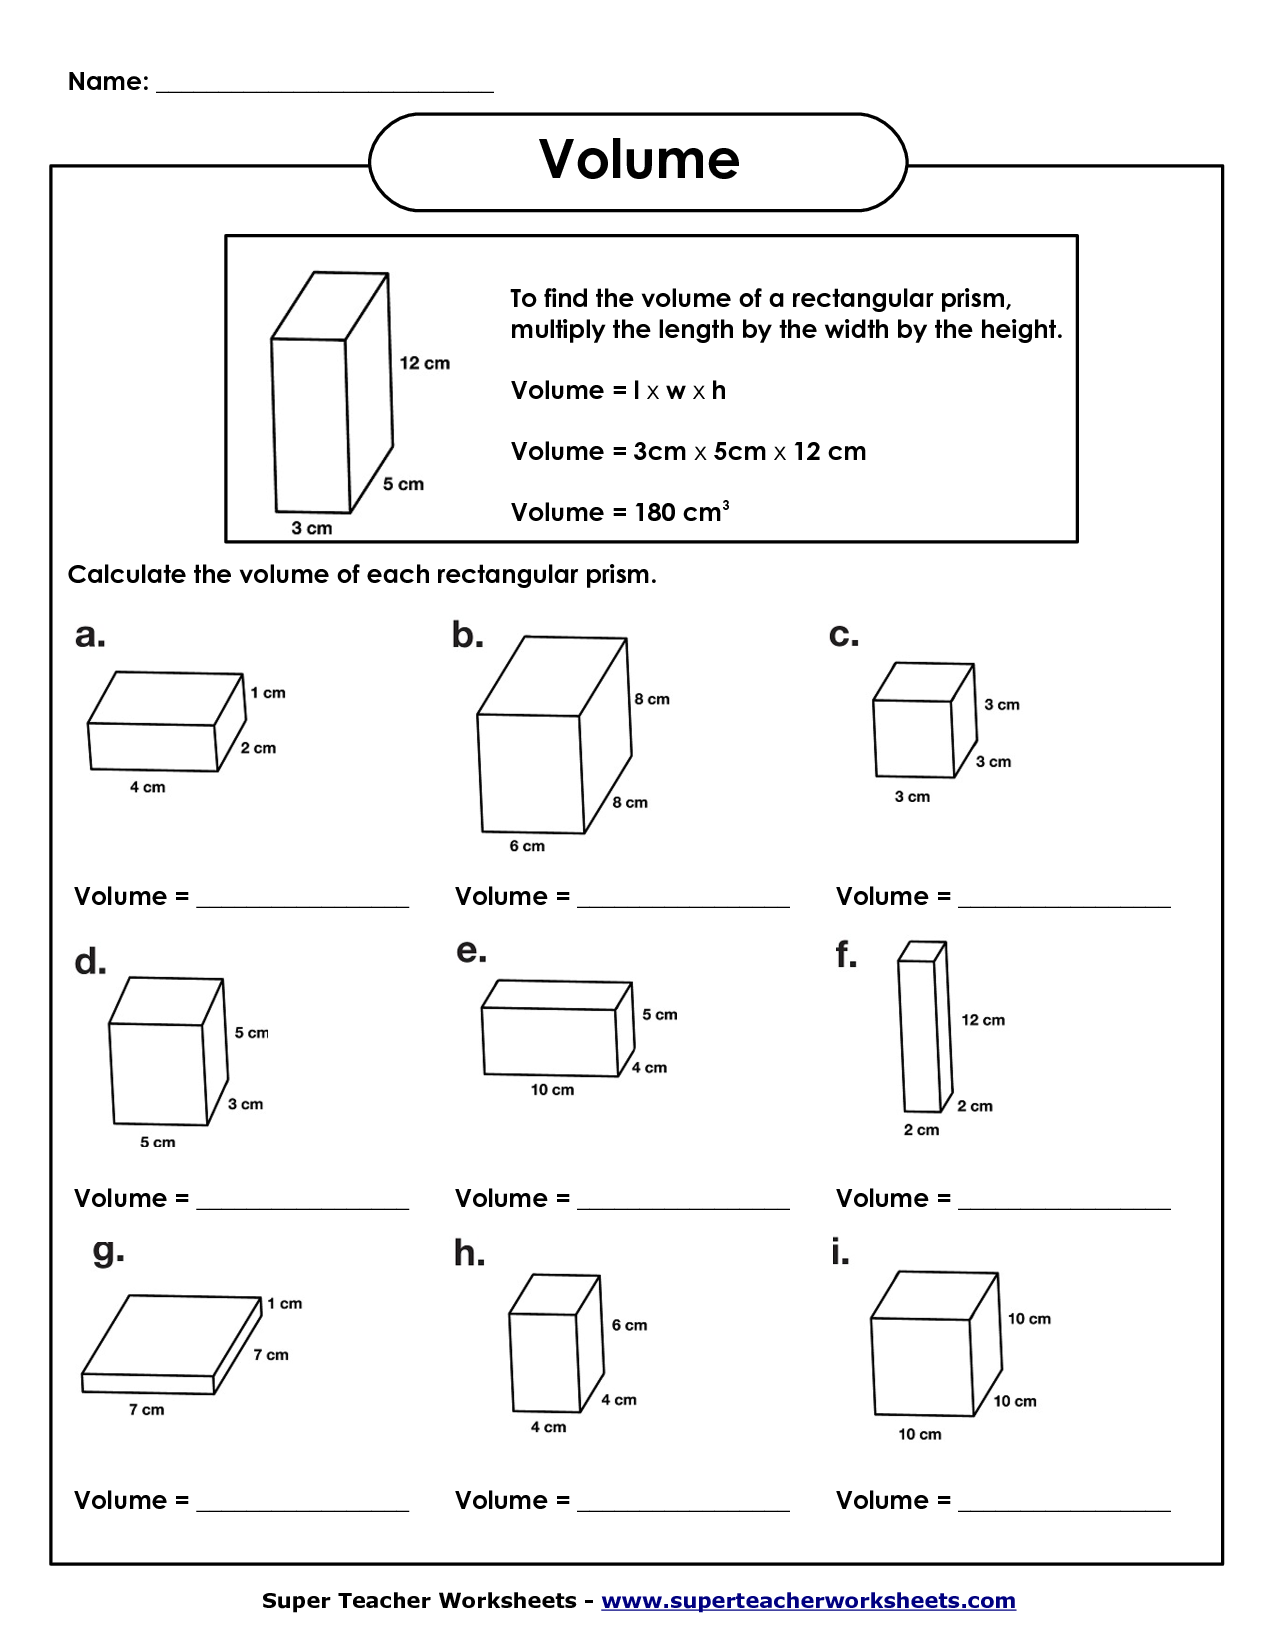 Worksheets Area And Volume Worksheets volume of rectangular prism worksheet worksheets math worksheets